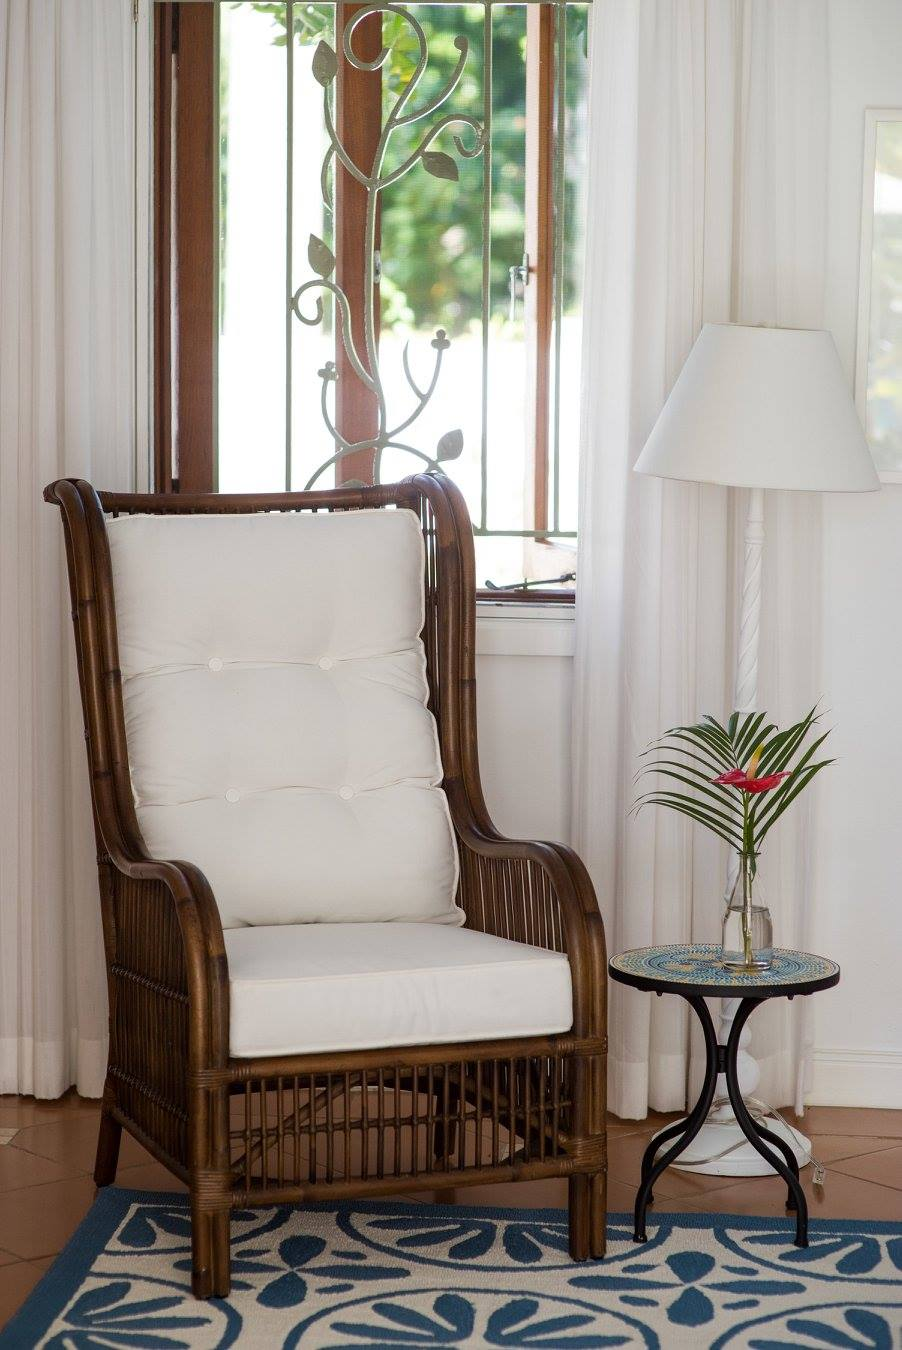 wooden chair with cushion on